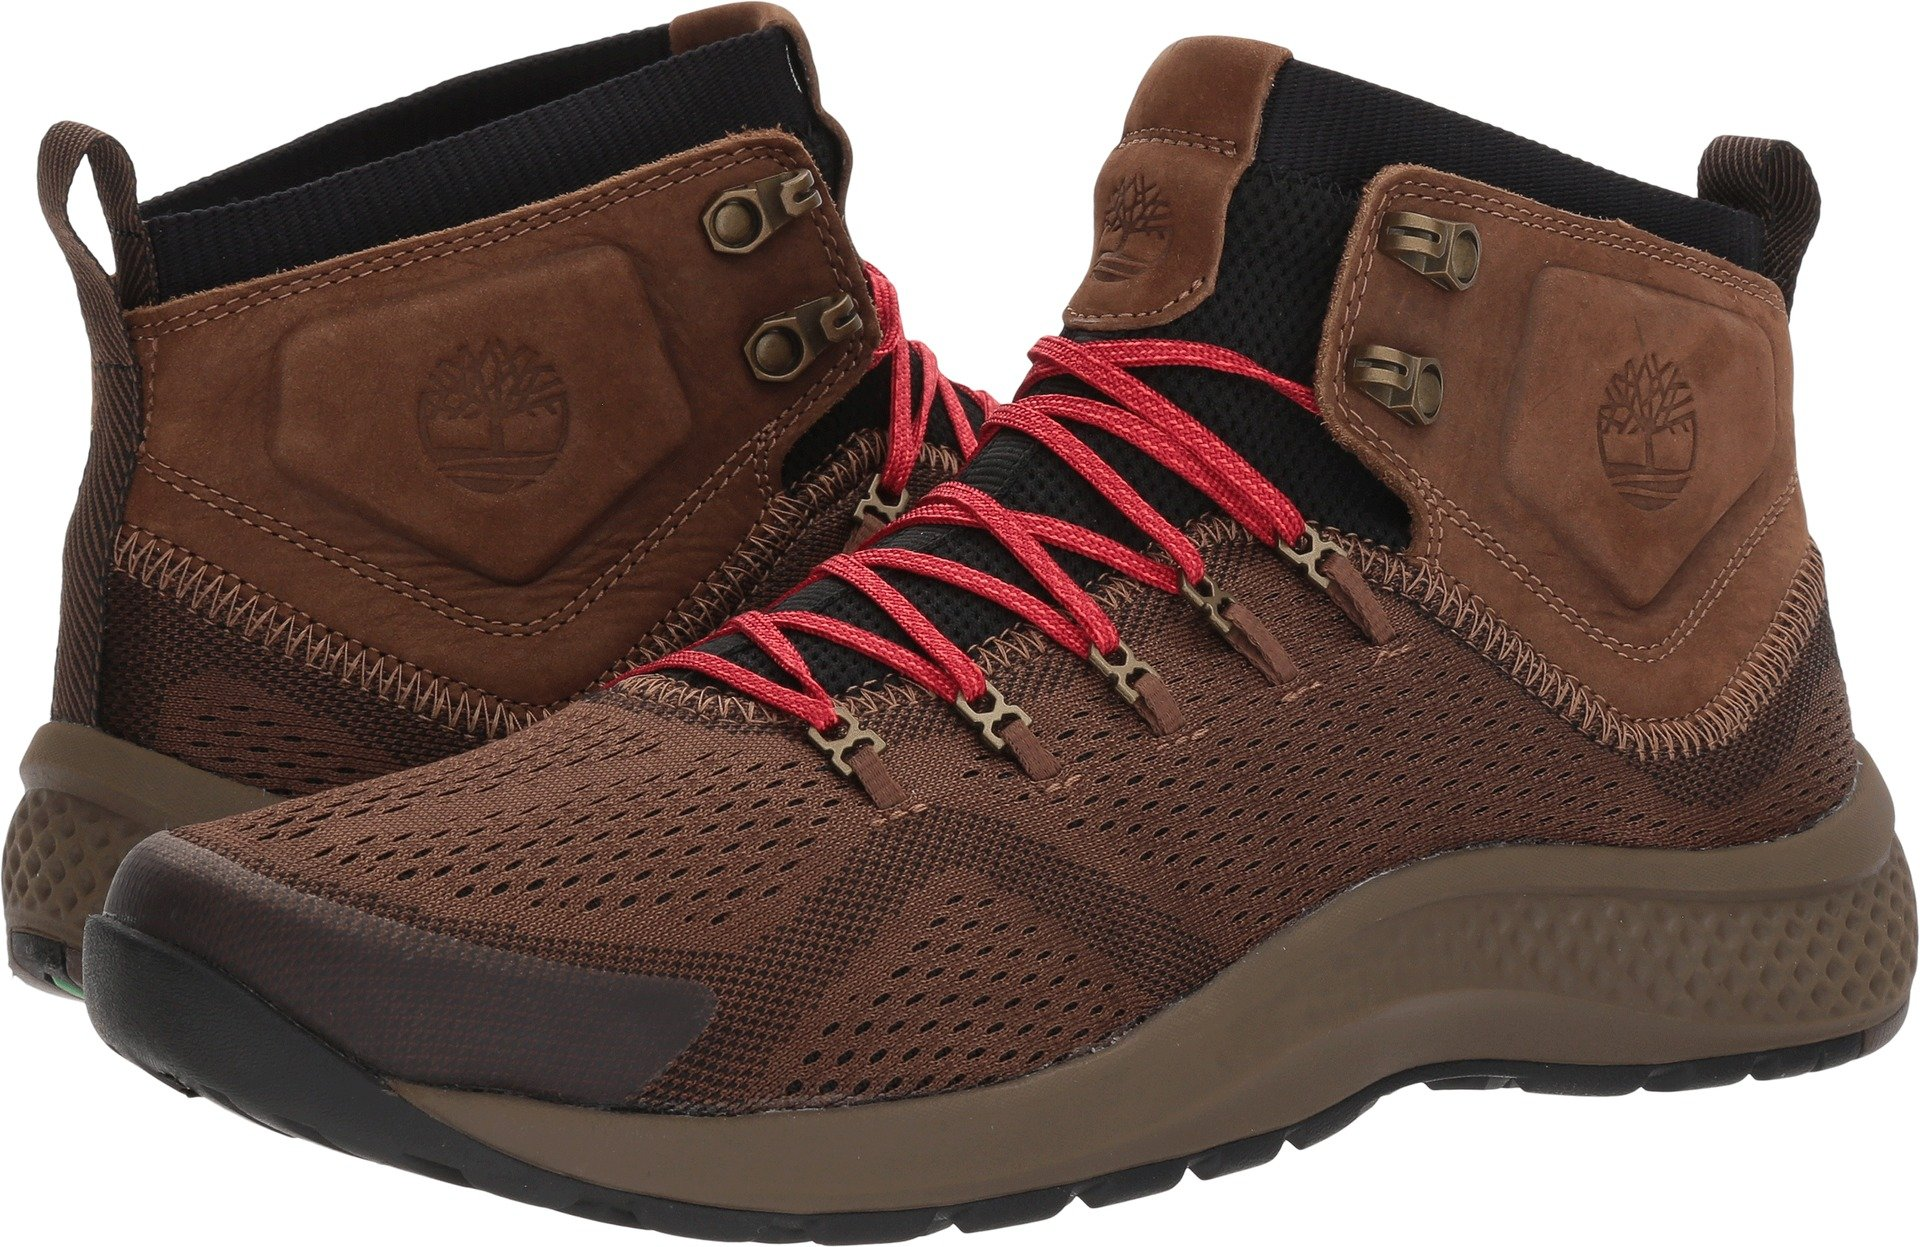 Timberland Mens Fly Roam Trail Mid Trail Sneaker, Dark Brown, 8.5 D(M) US